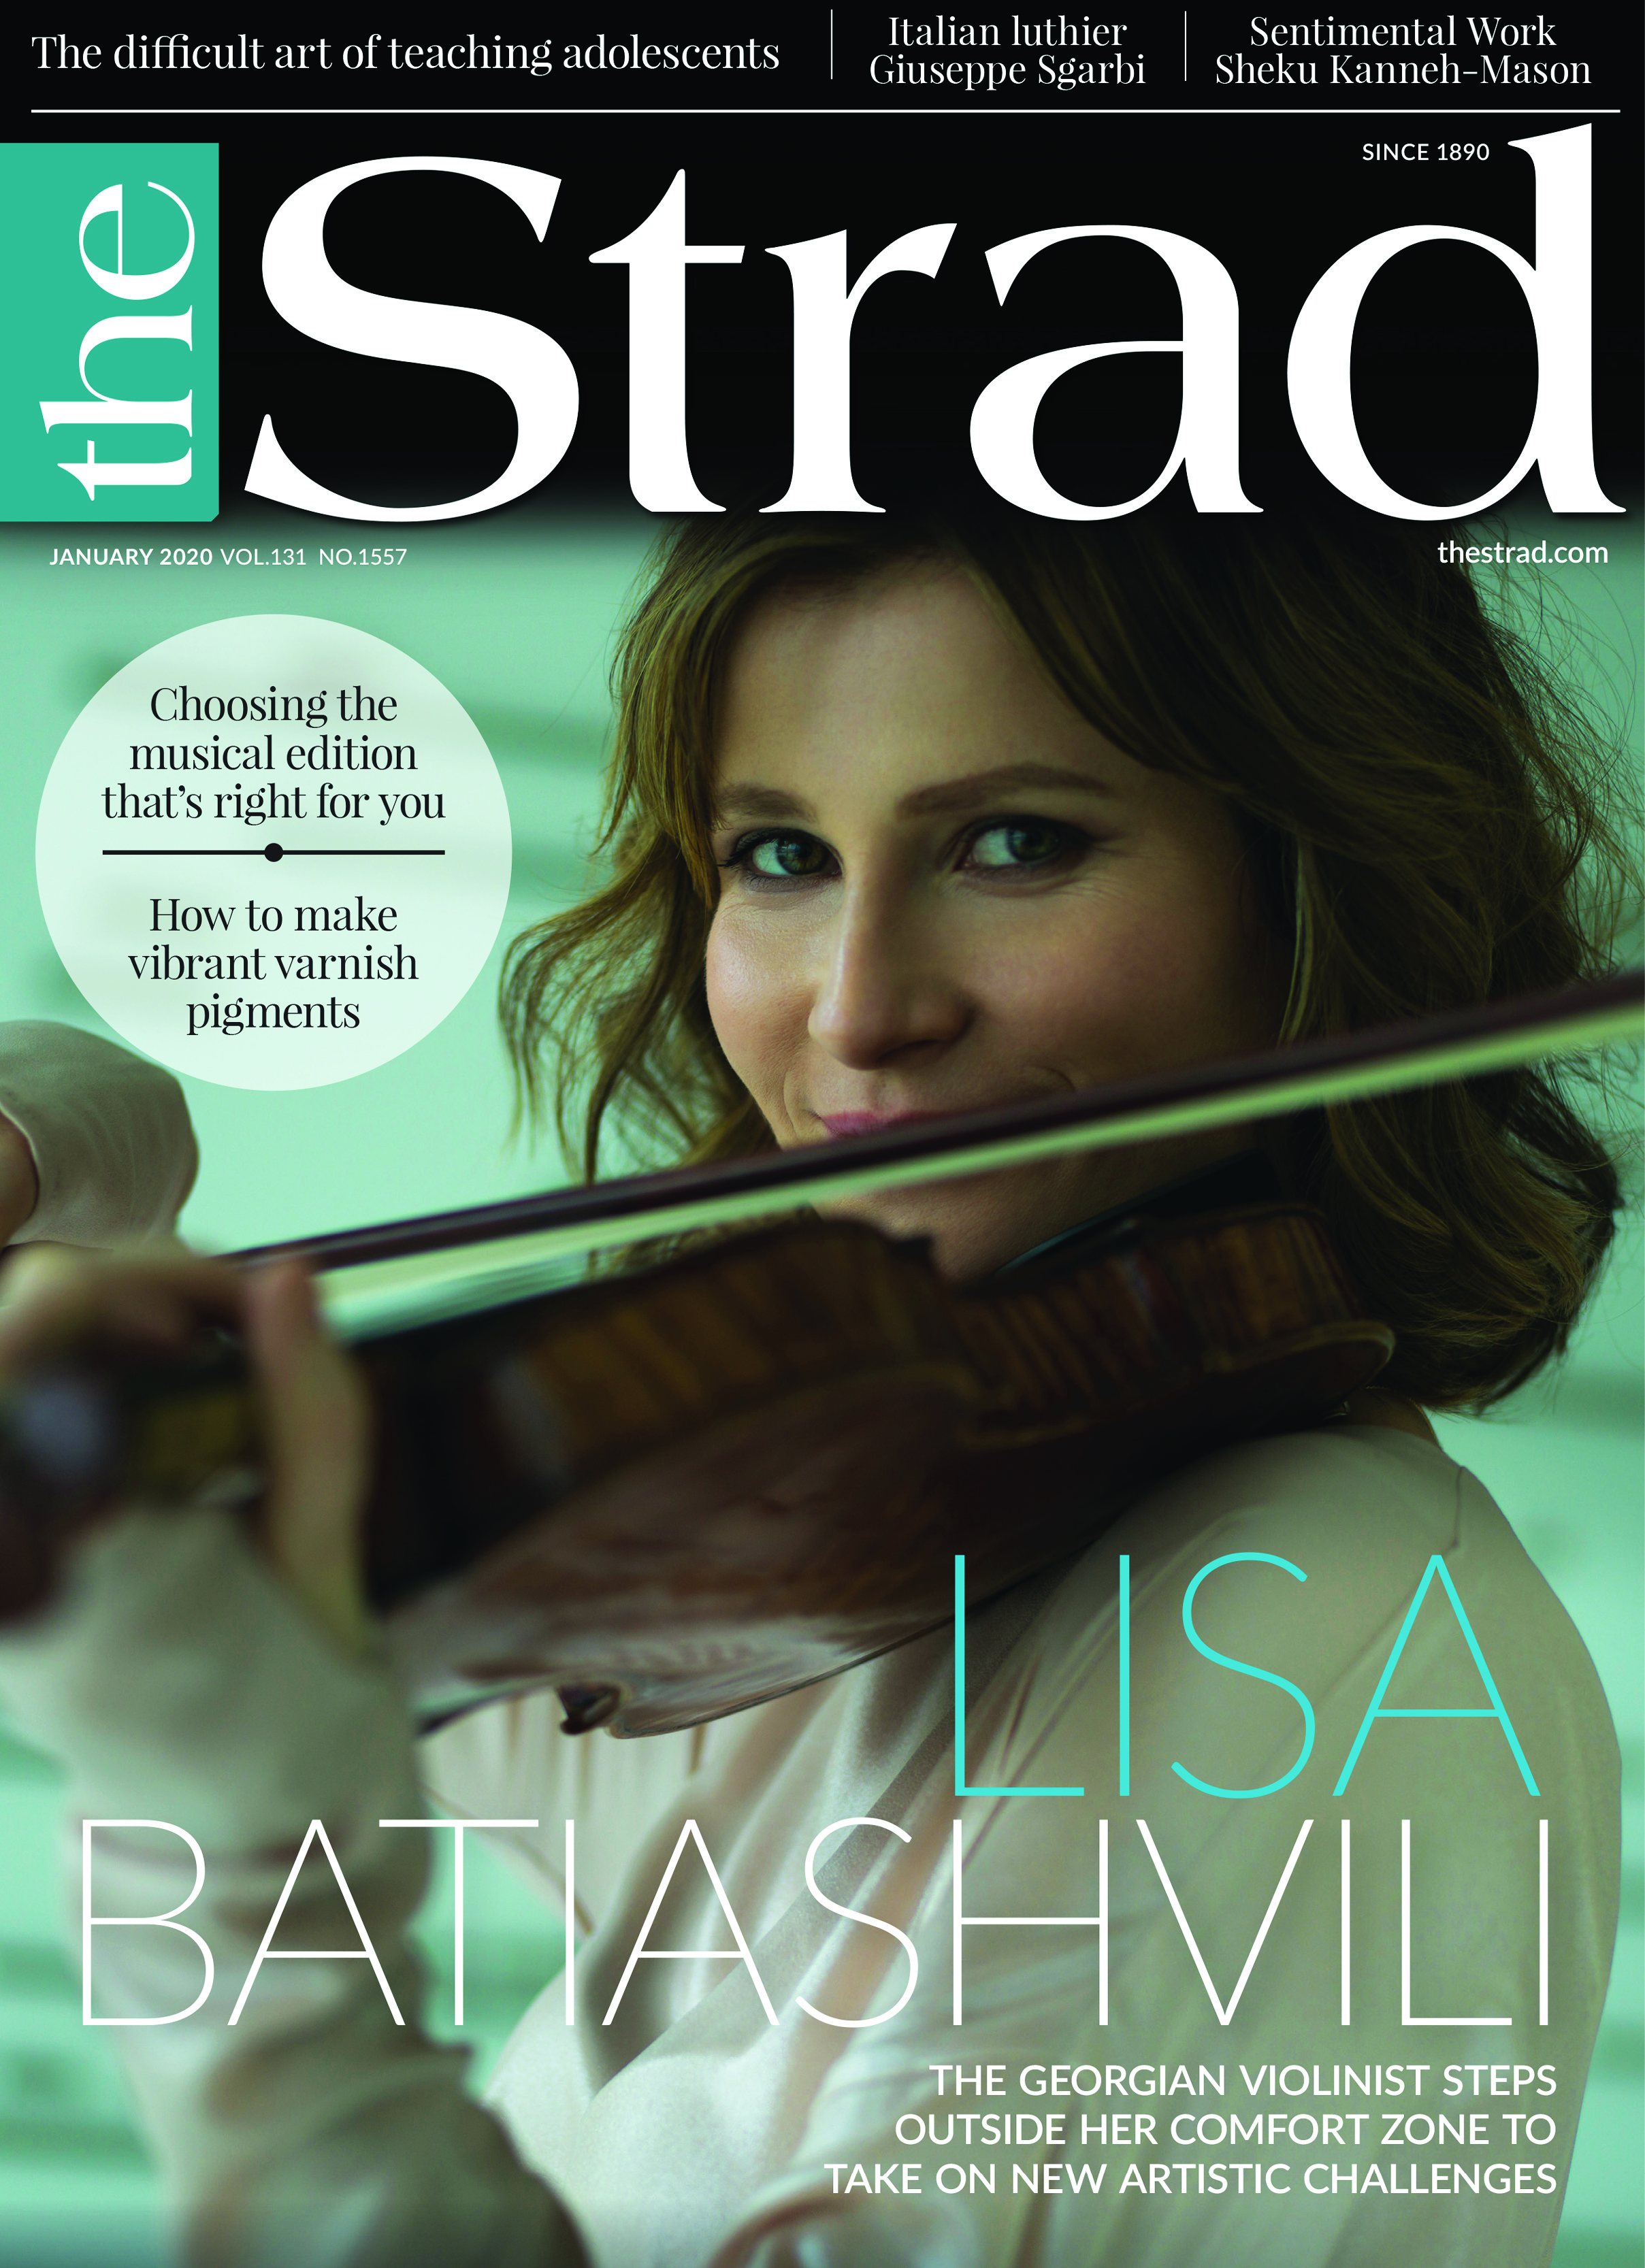 Georgian violinist Lisa Batiashvili discusses her latest projects, among them artistic directorship of the Audi Summer Concerts festival and performing on the soundtrack to The White Crow | January 2020 issue | The Strad